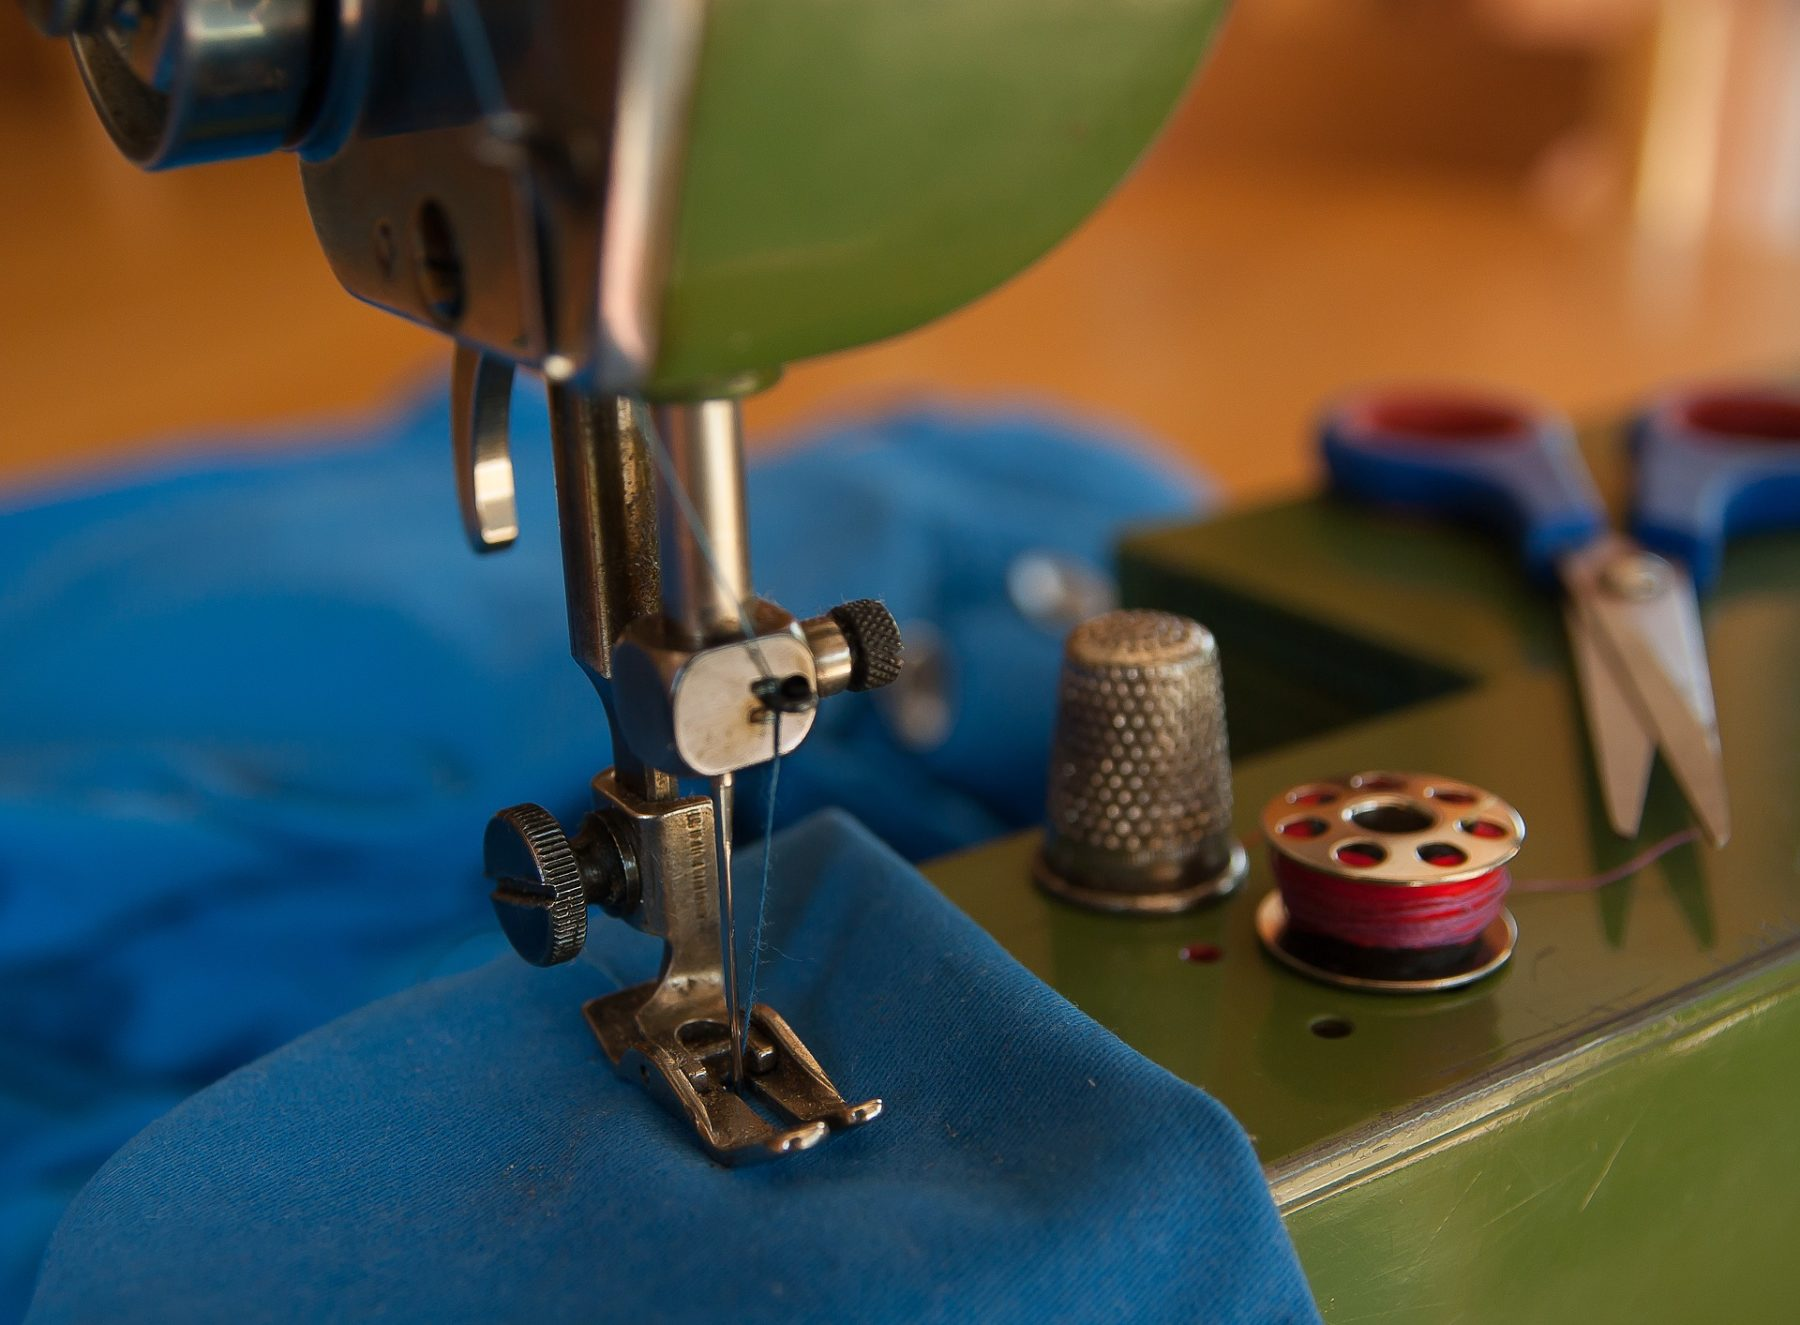 Sewing-Mach